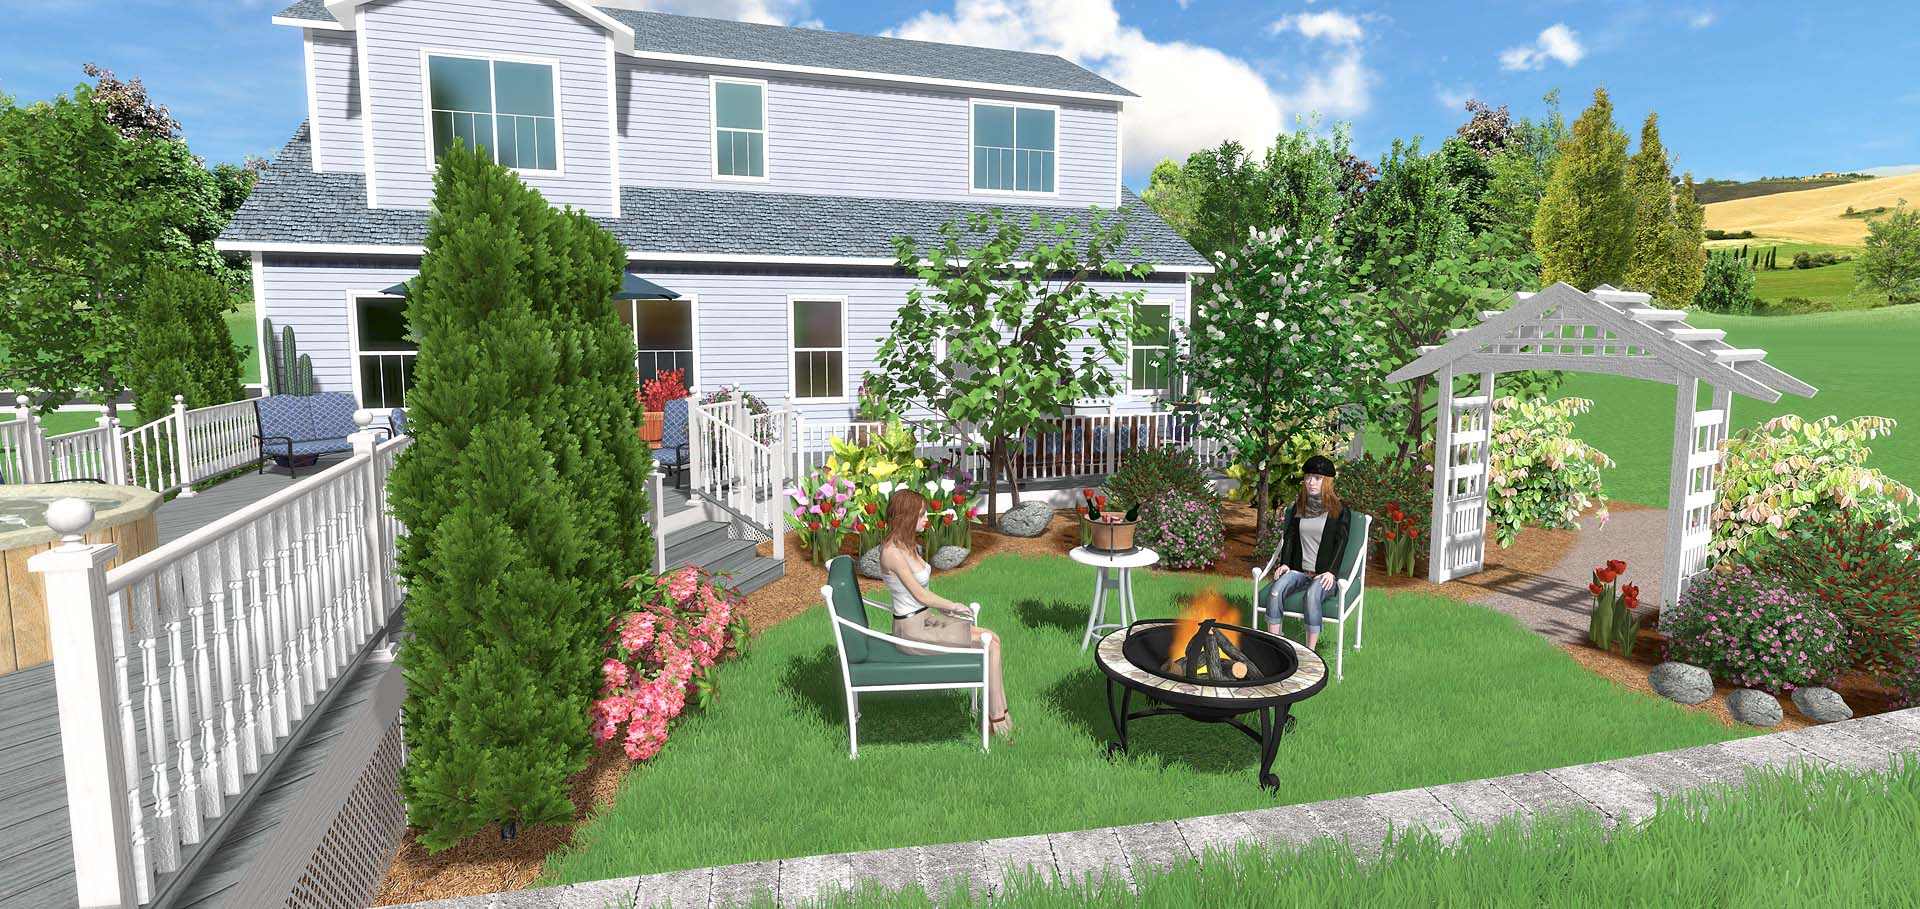 Landscape design software overview for Architect 3d home landscape design